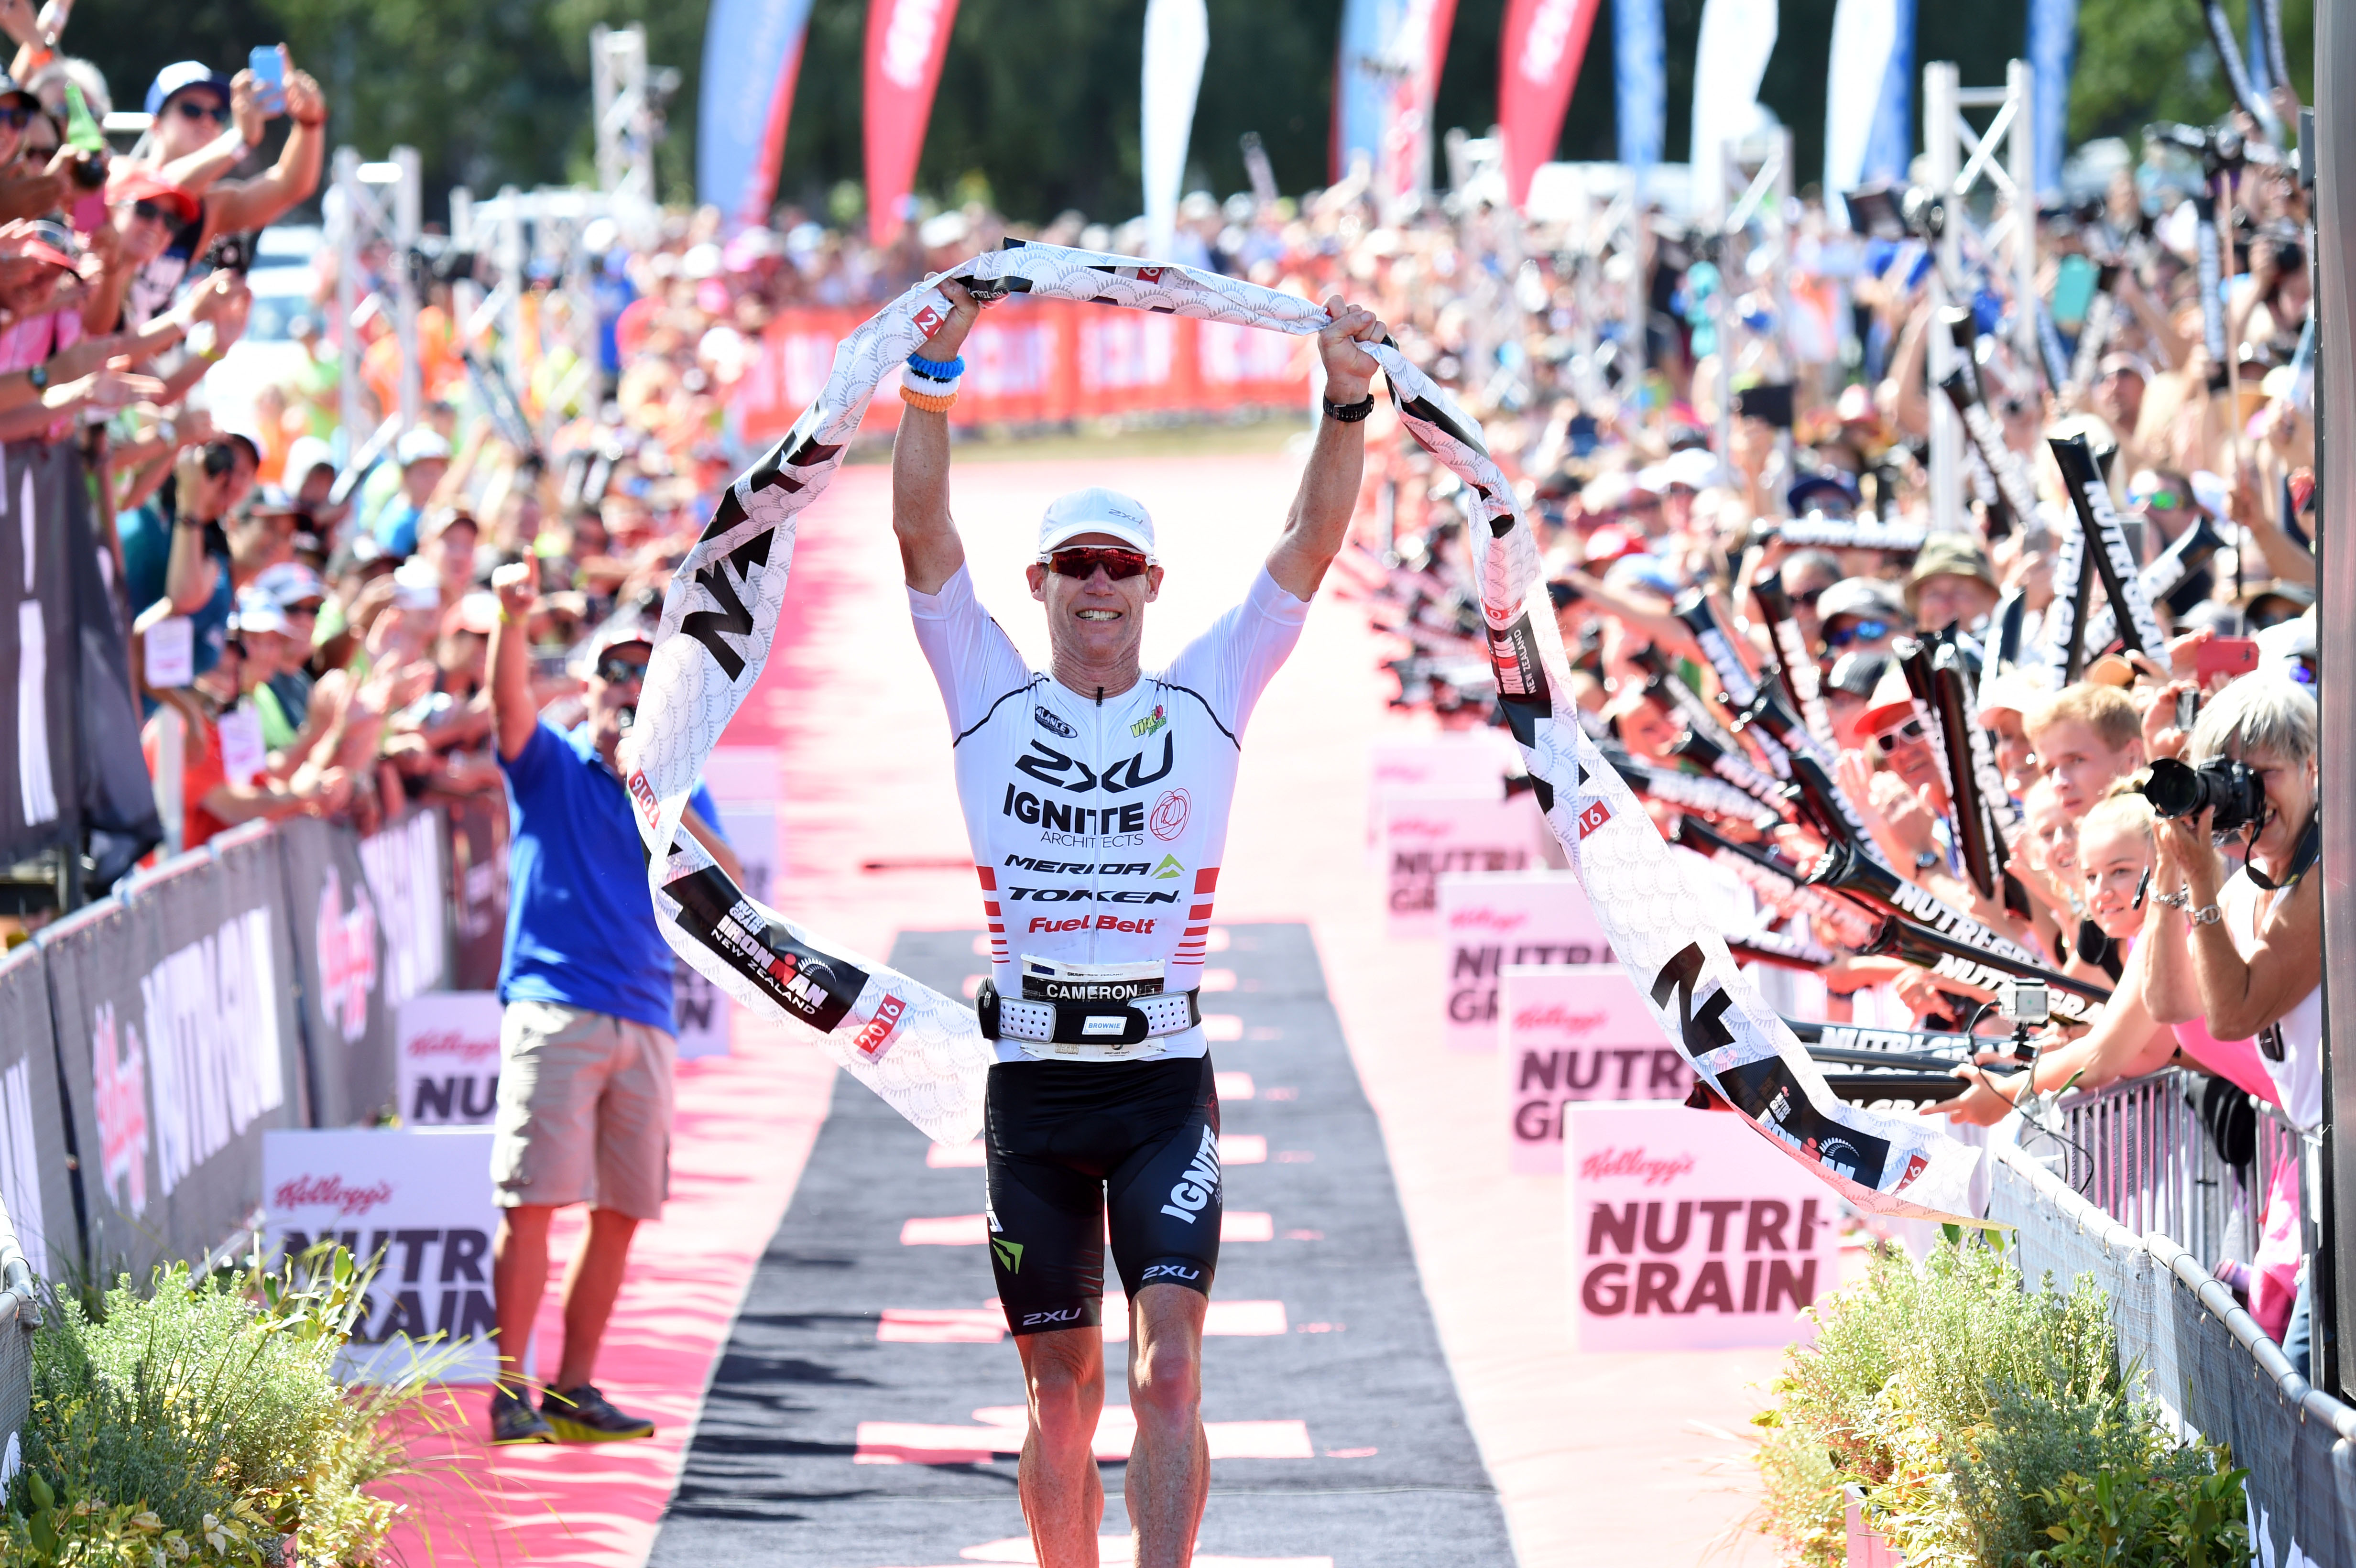 Ironman legend aiming to break 8 hours in the west